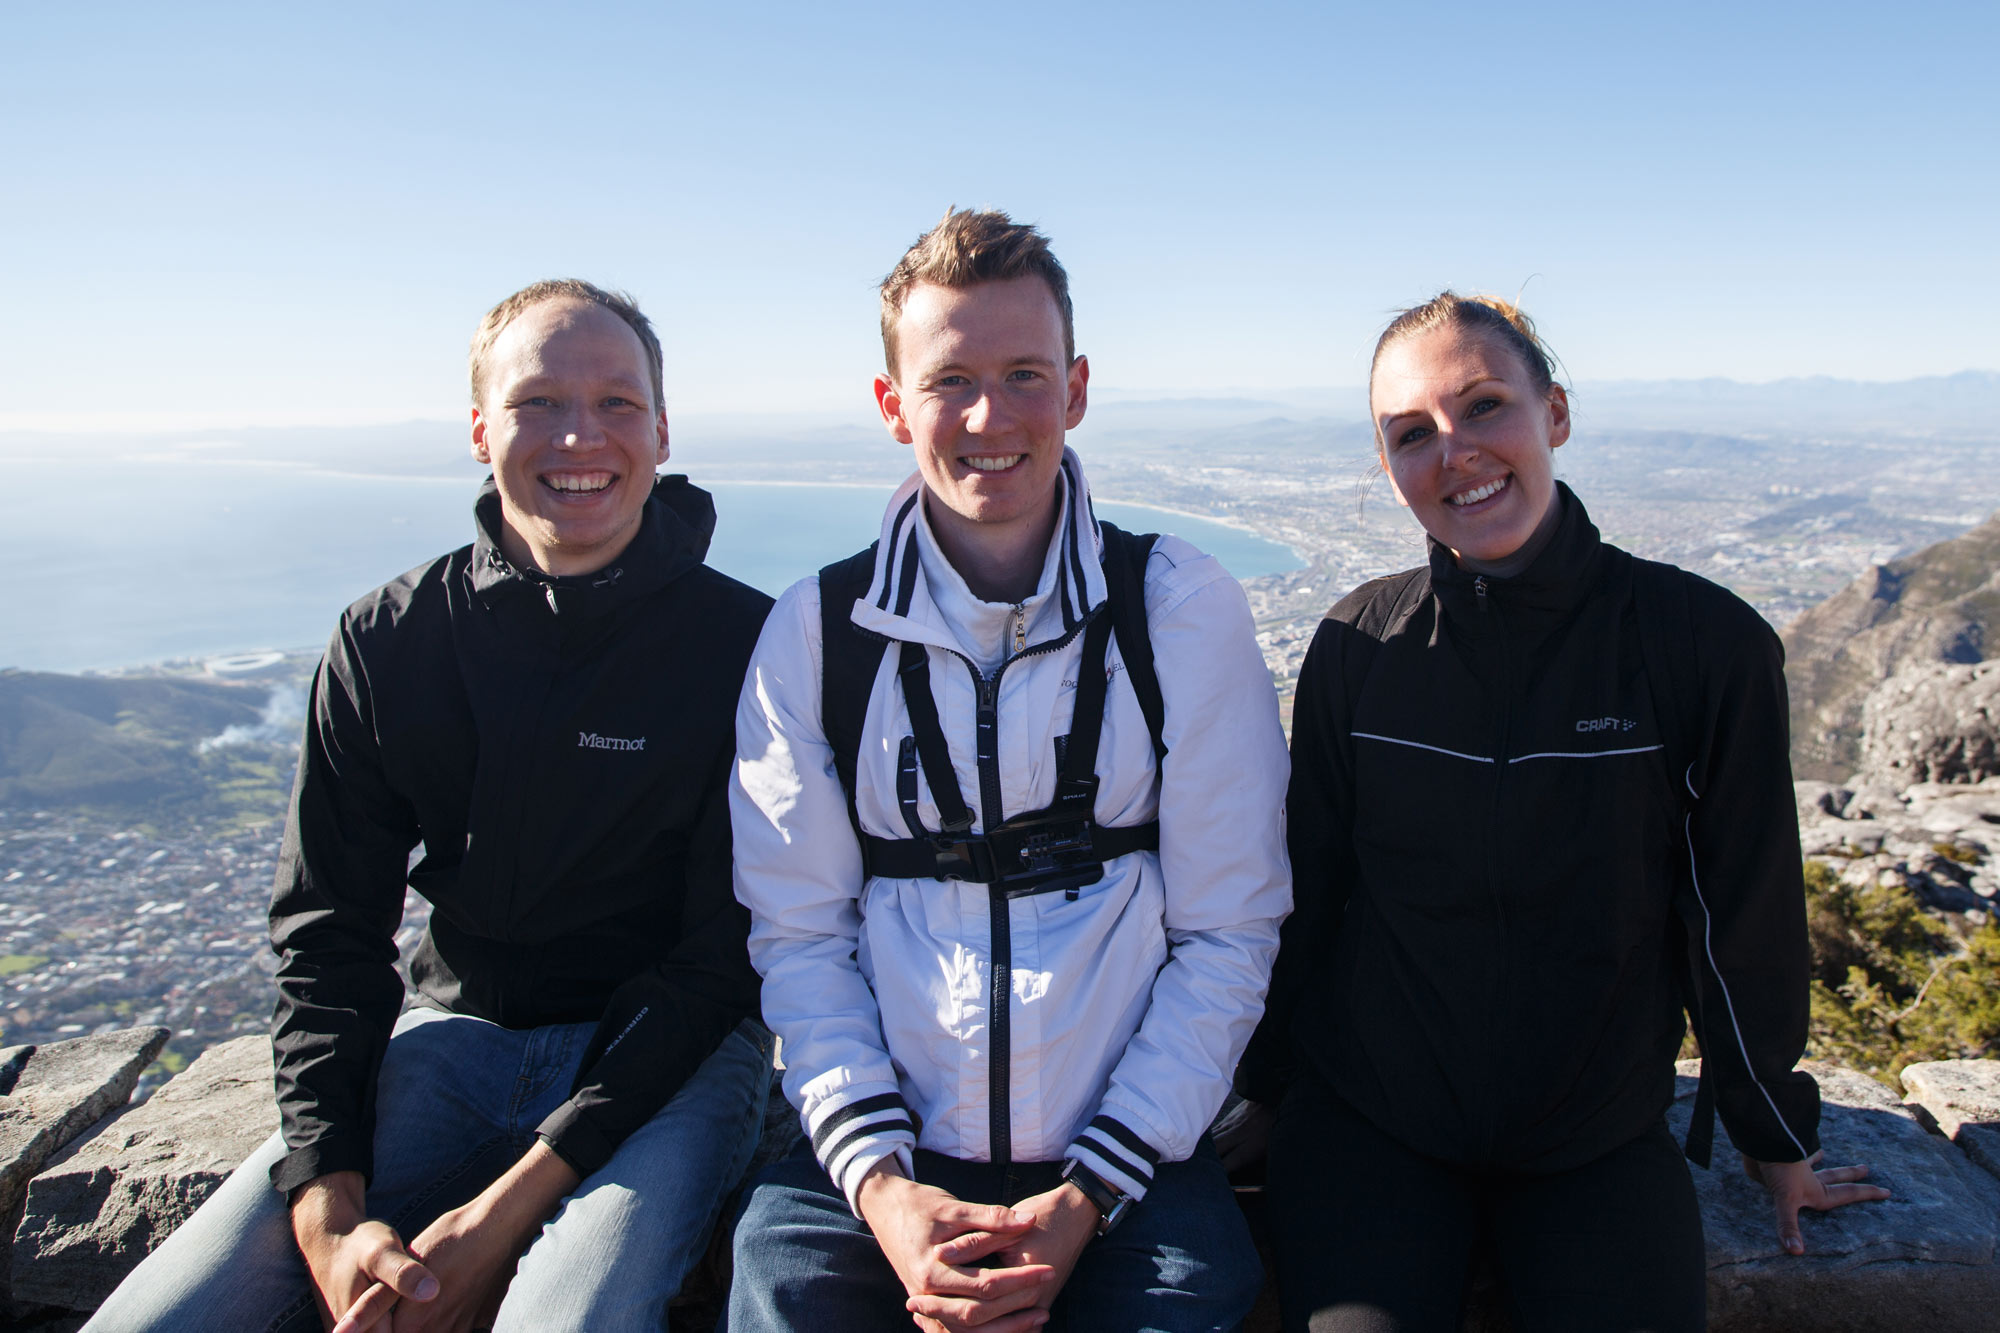 On the top of the Table Mountain.